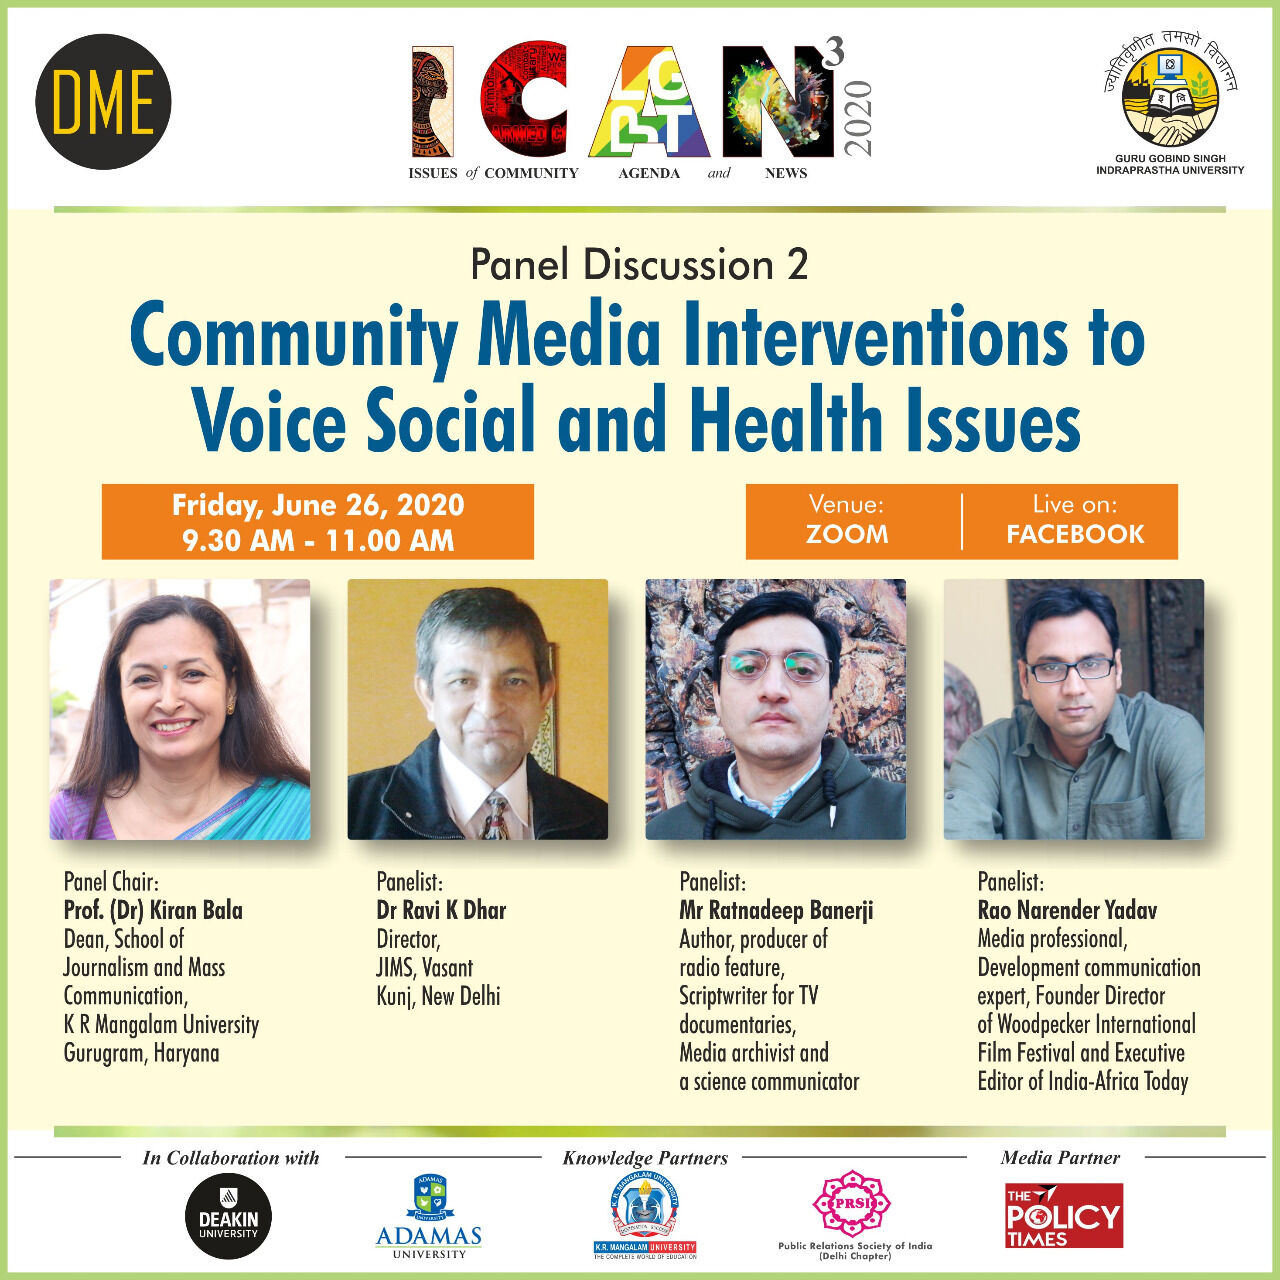 Community Media Interventions to Voice Social and Health Issues